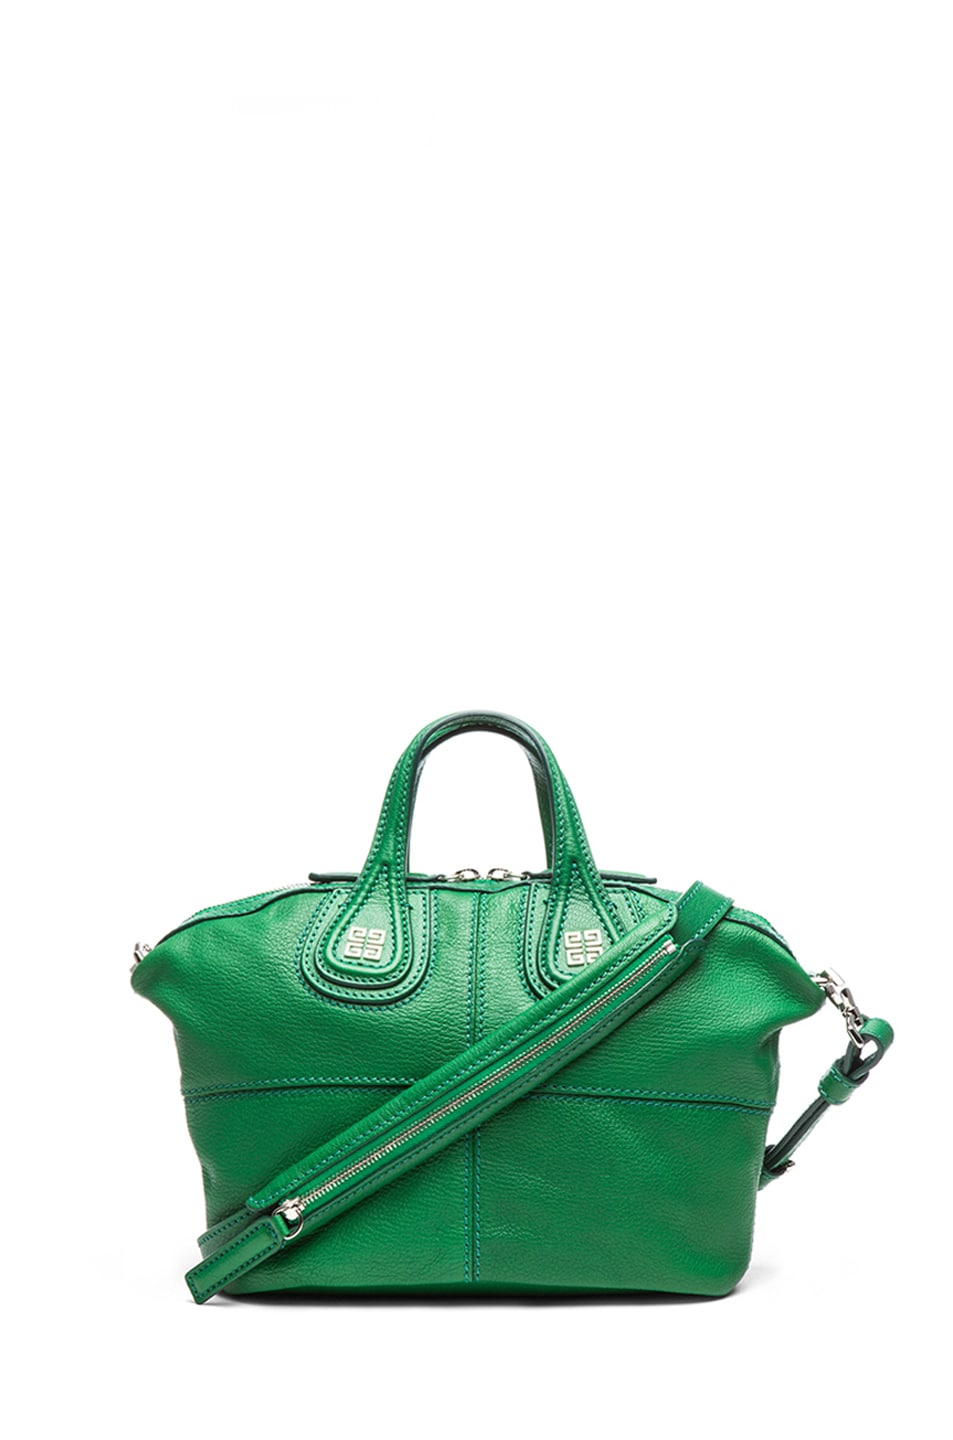 Image 1 of GIVENCHY Micro Nightingale in Emerald Green